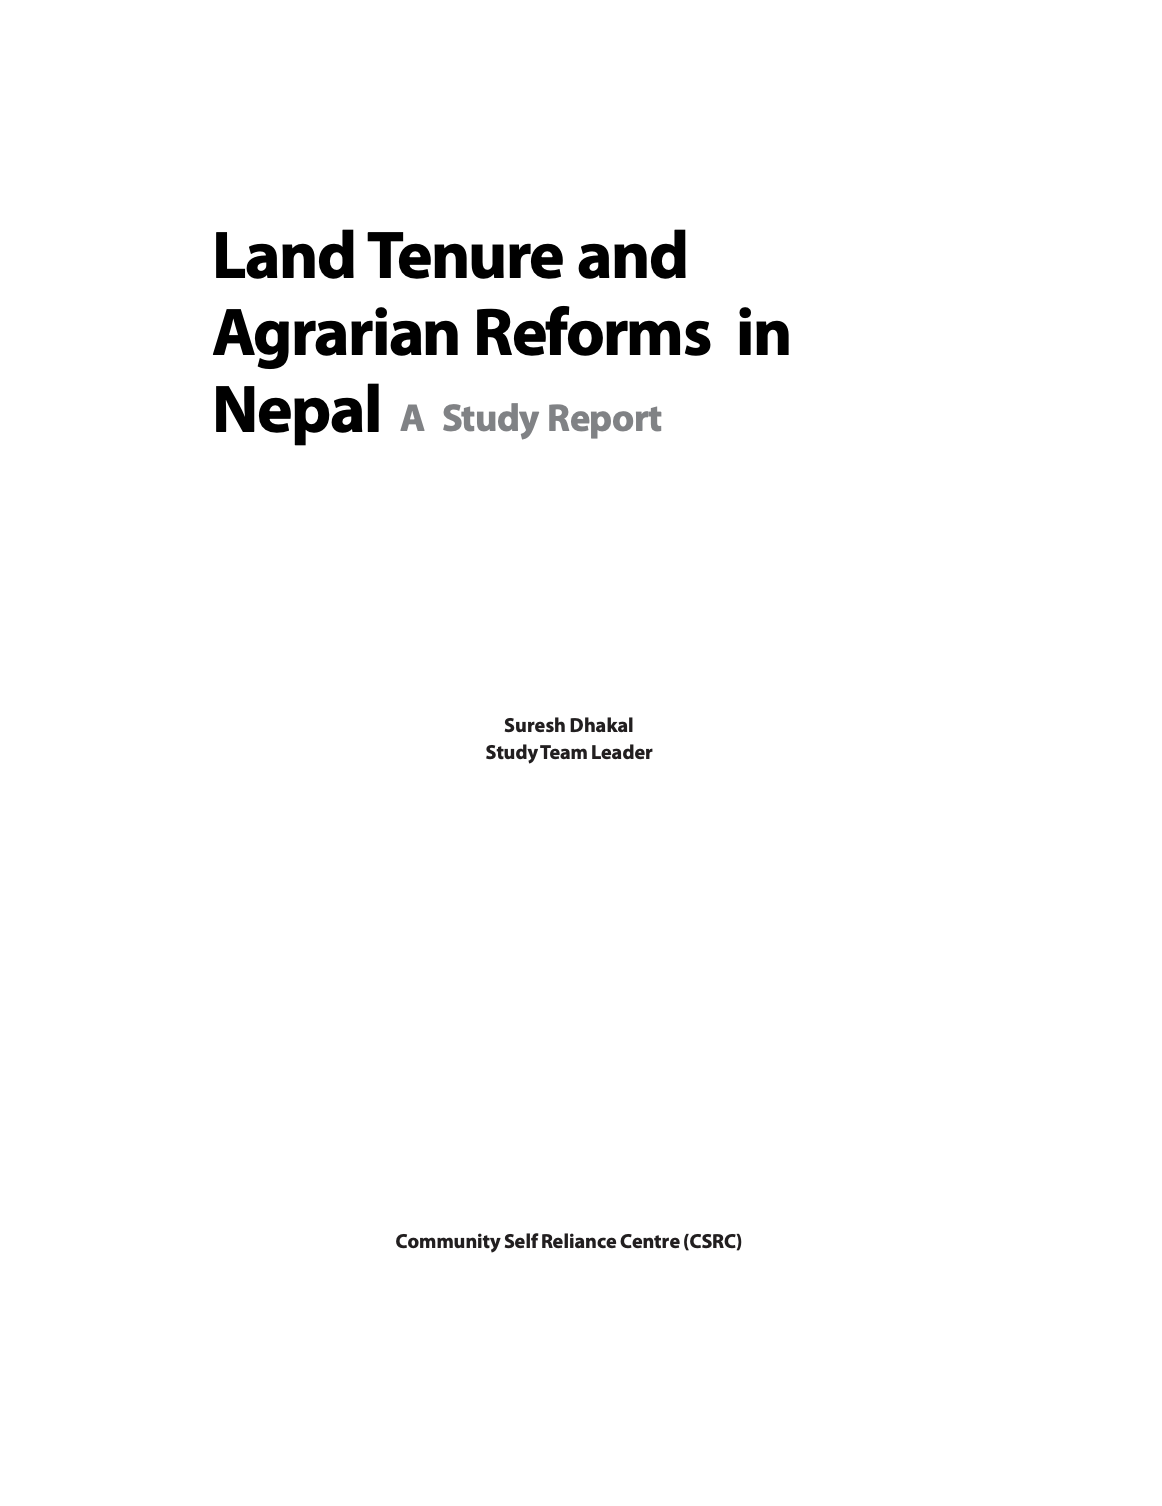 Land Tenure and Agrarian Reforms in Nepal: A Study Report